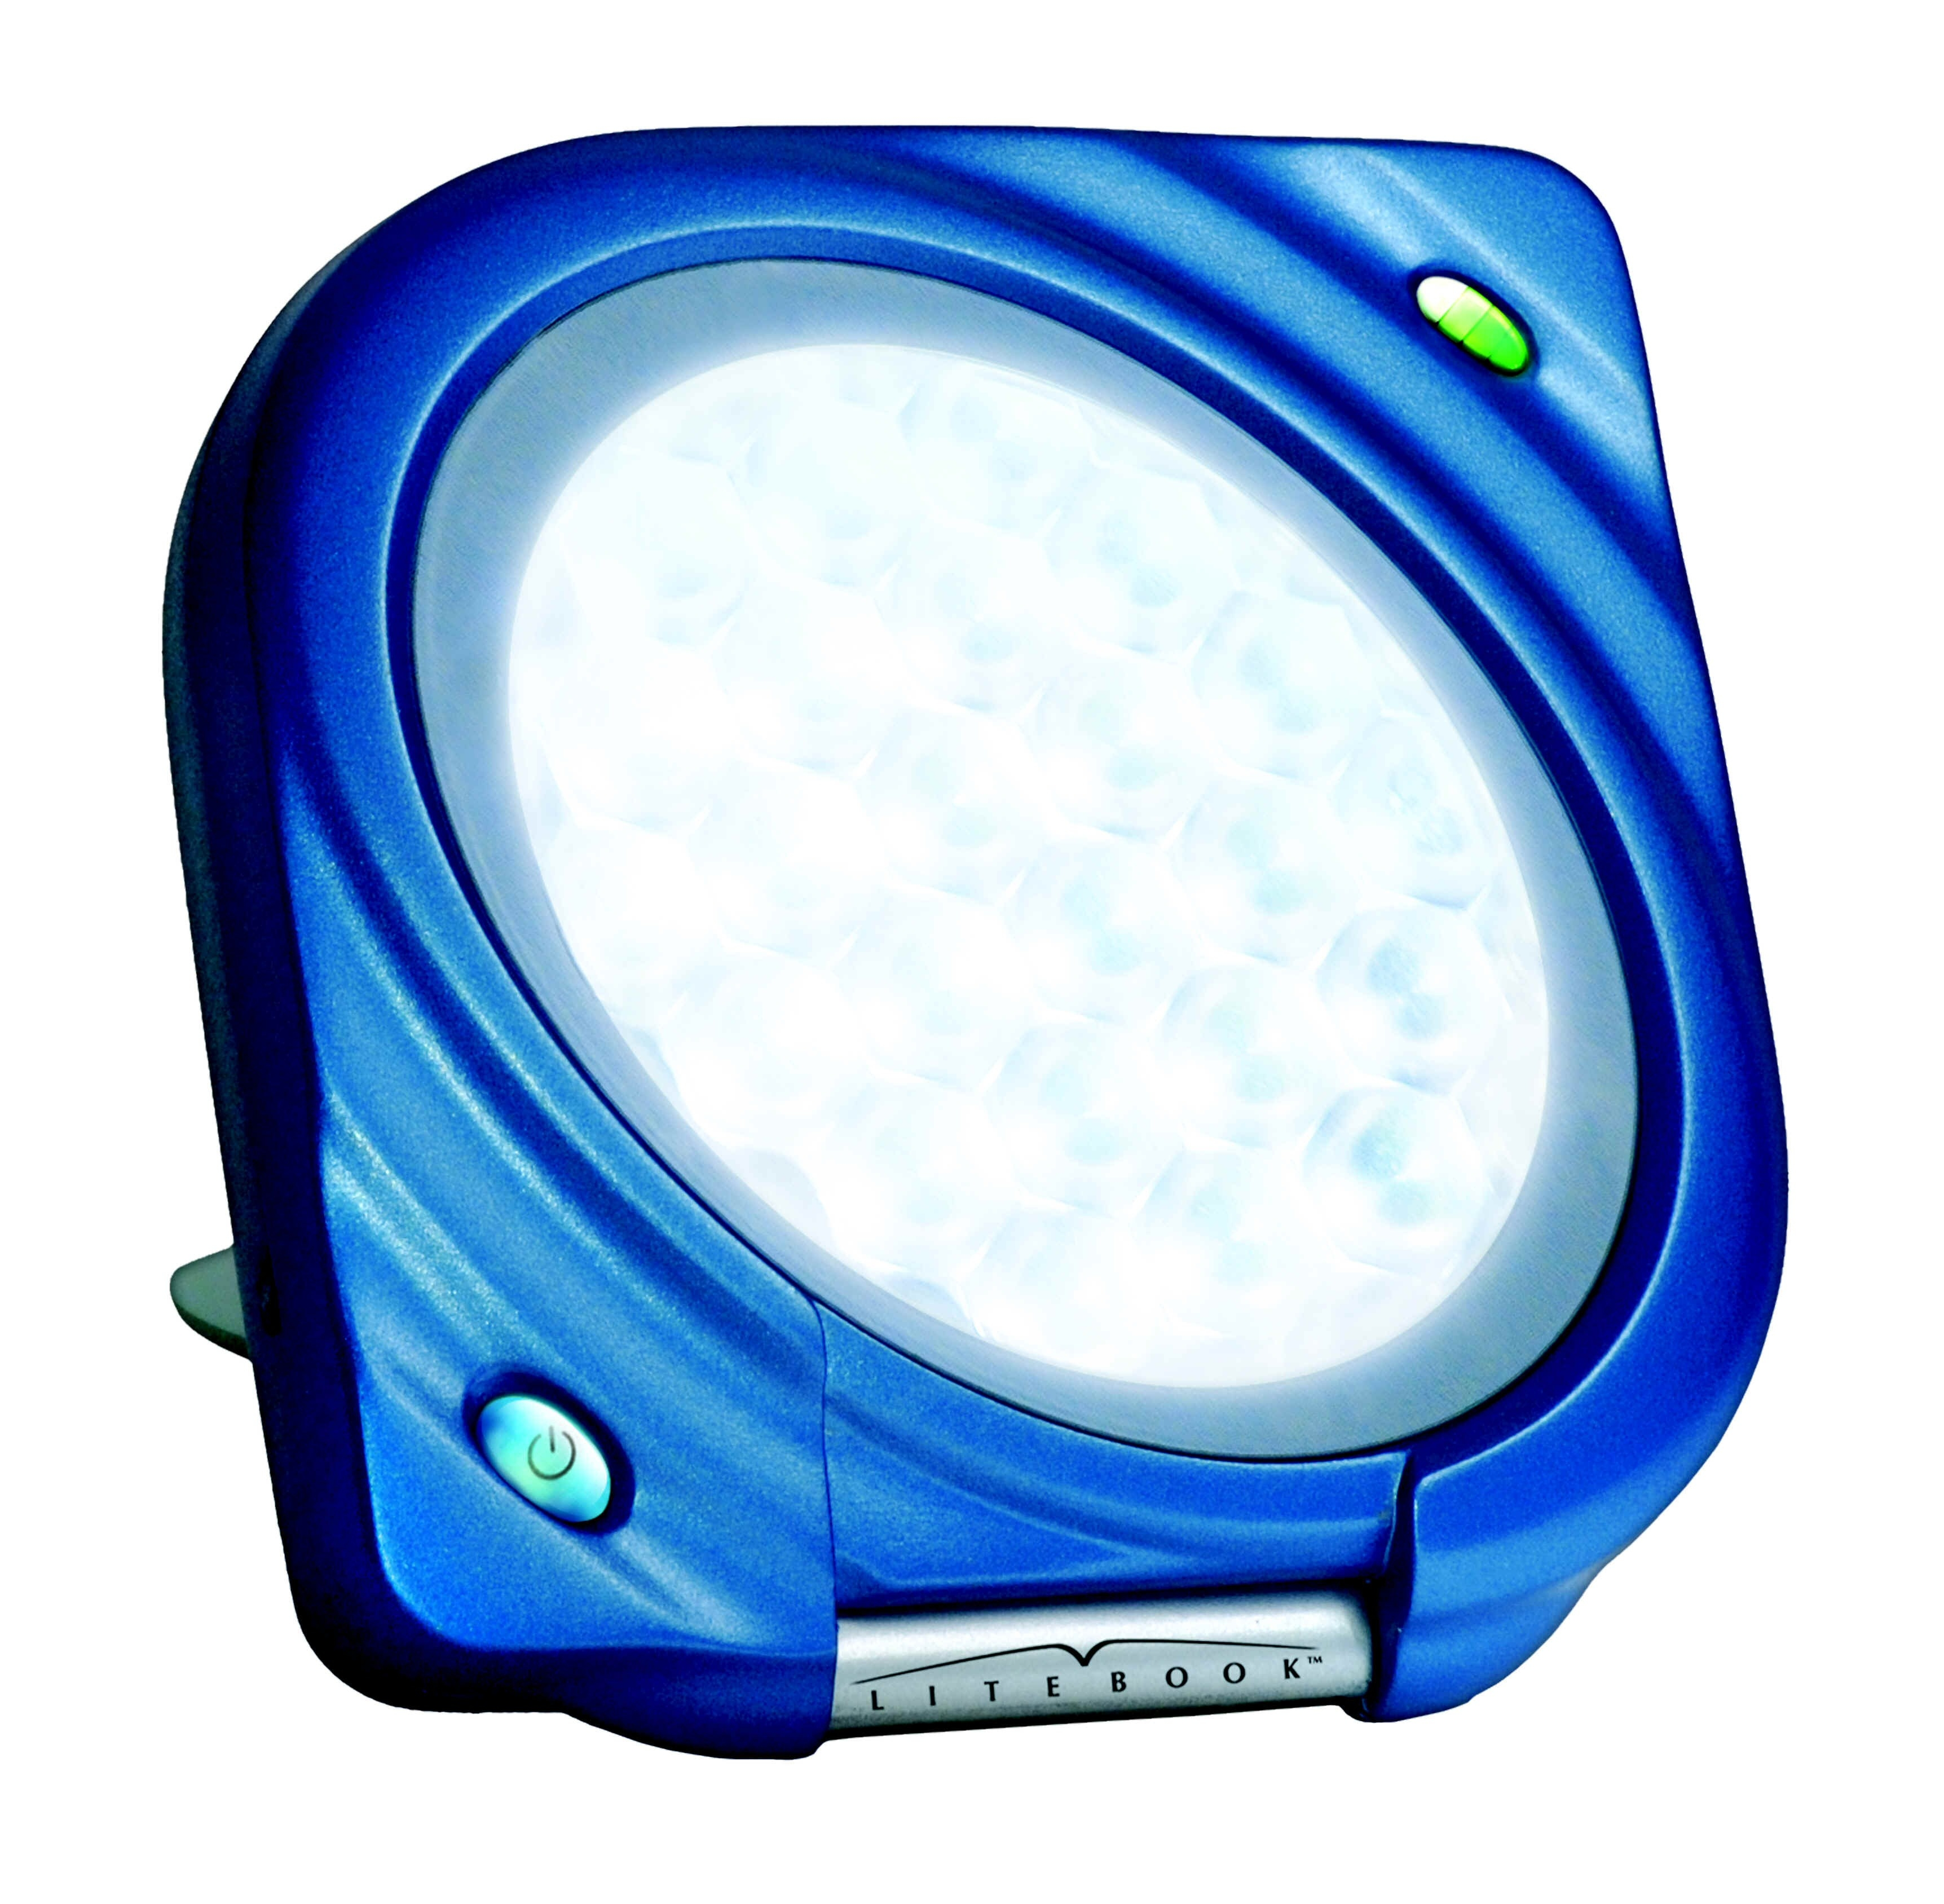 Litebook Elite - Bright Light Therapy for Seasonal Affective Disorder & Depression